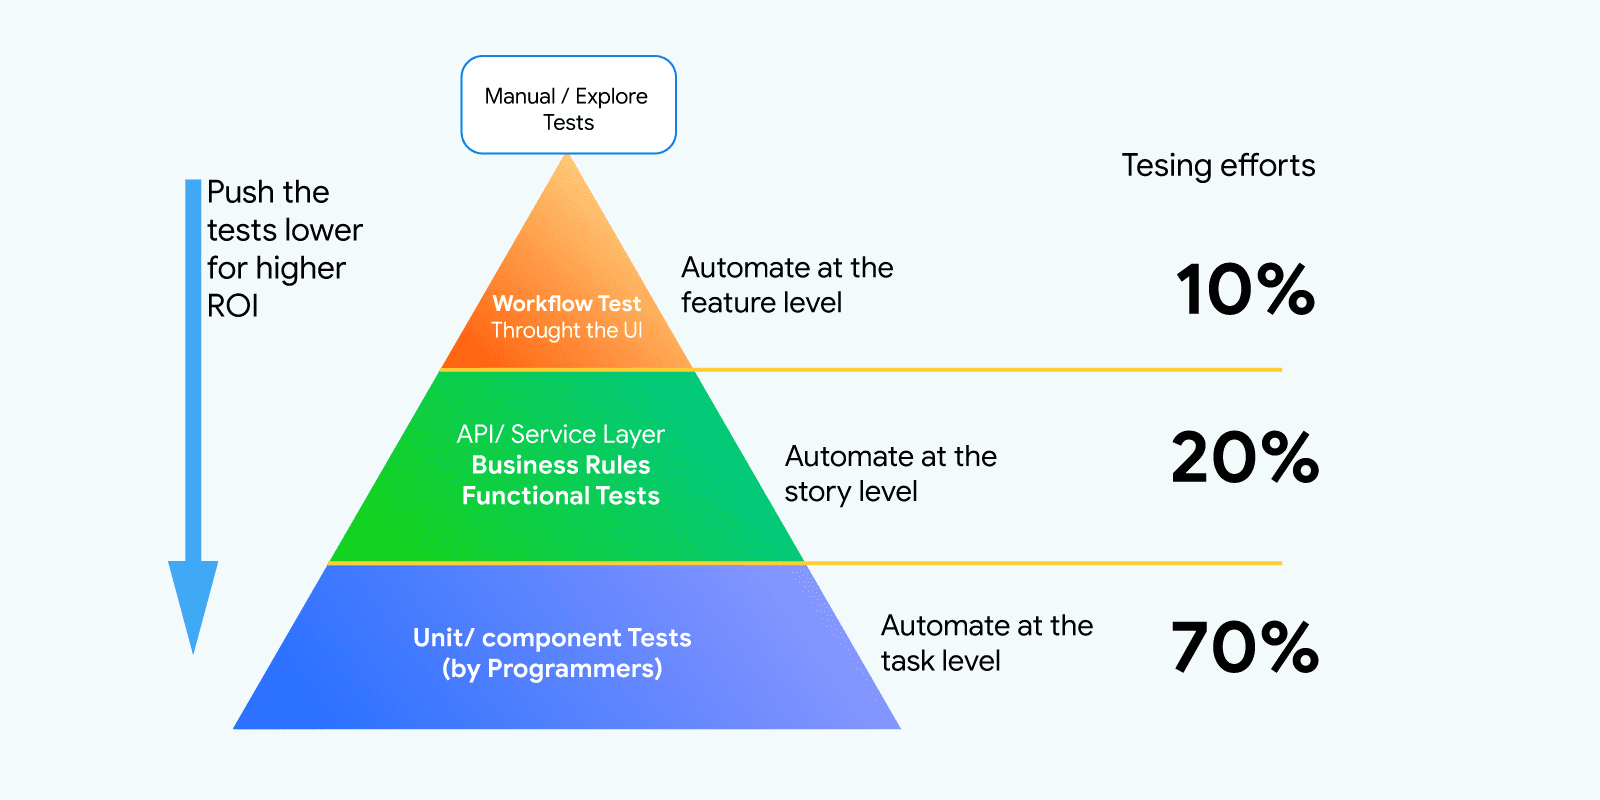 Why we need perform API testing